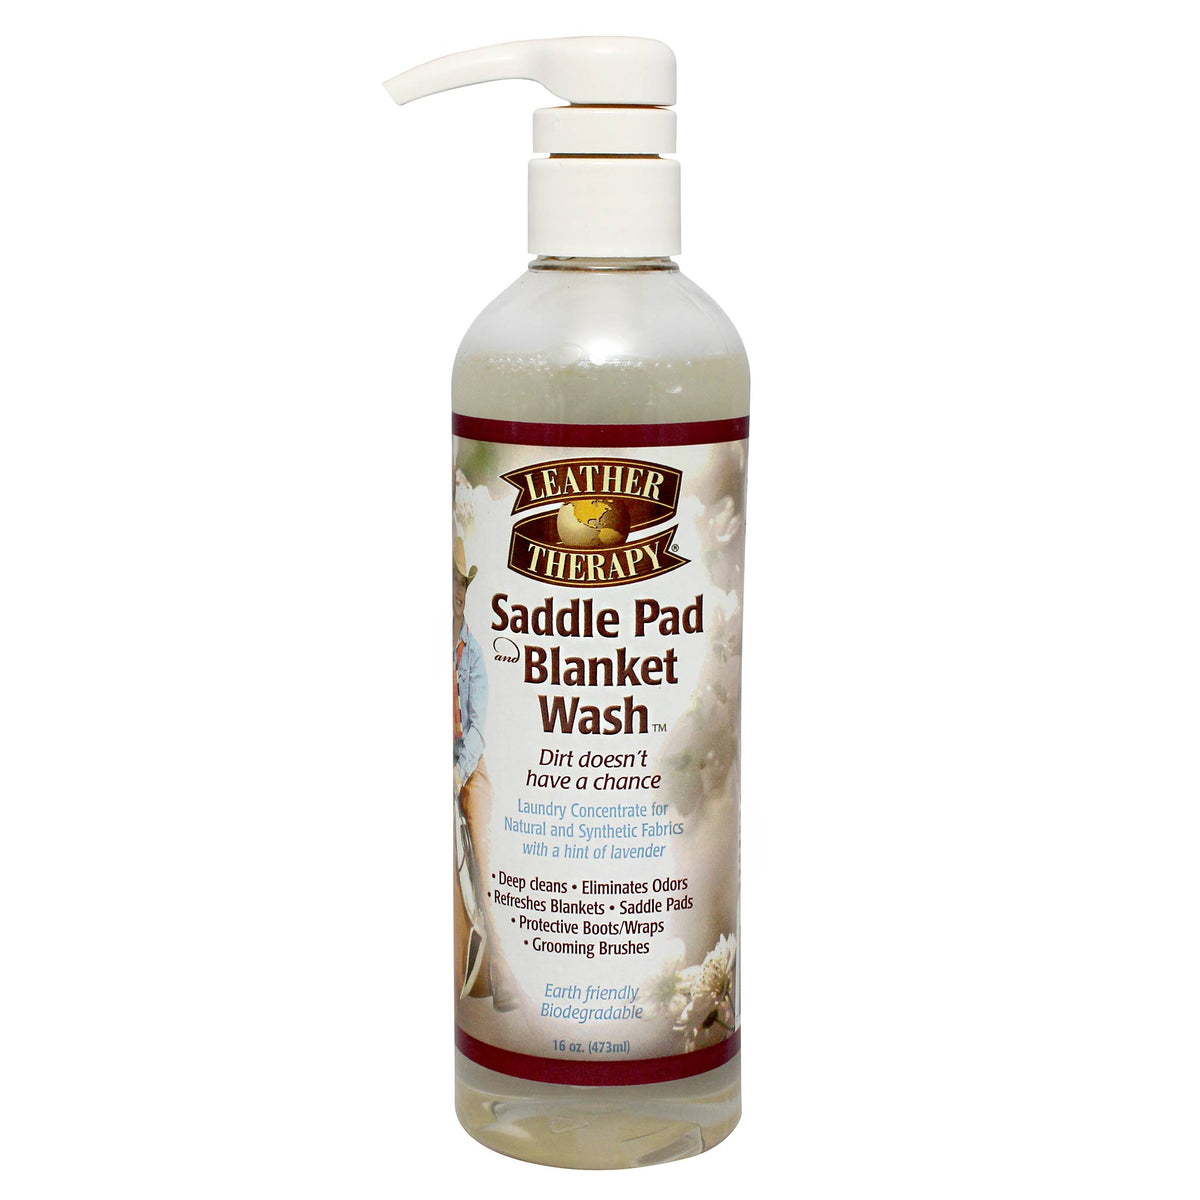 Leather Therapy Saddle Pad & Blanket Wash 473mL